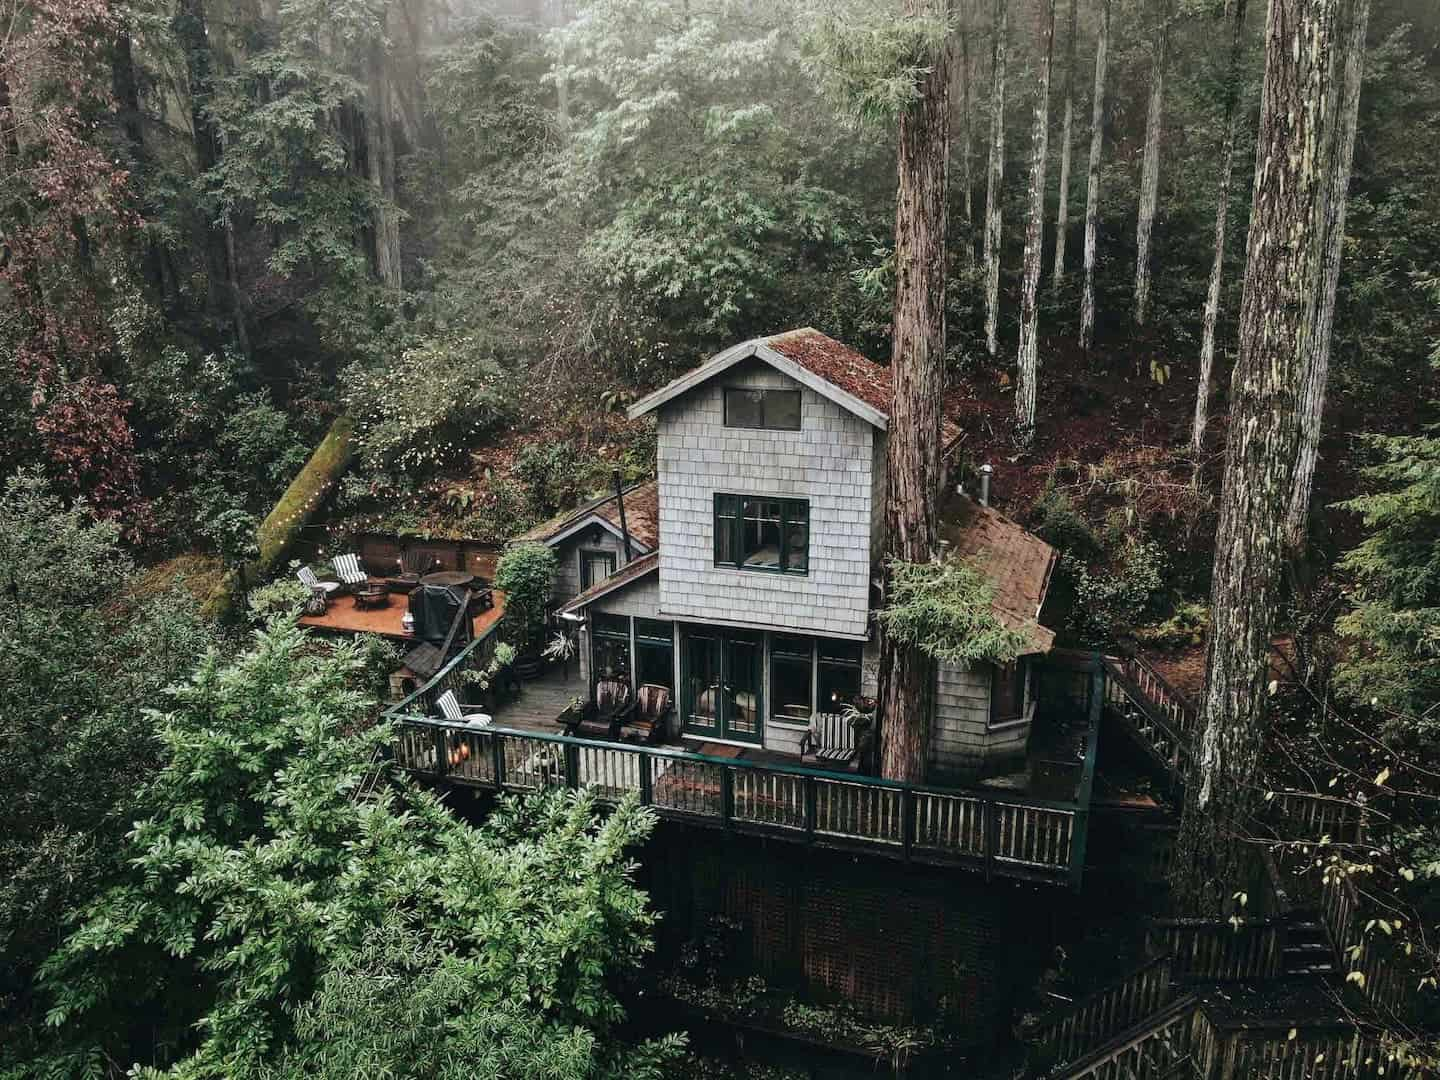 Bay Area glamping treehouse view of the Crows Nest Treehouse